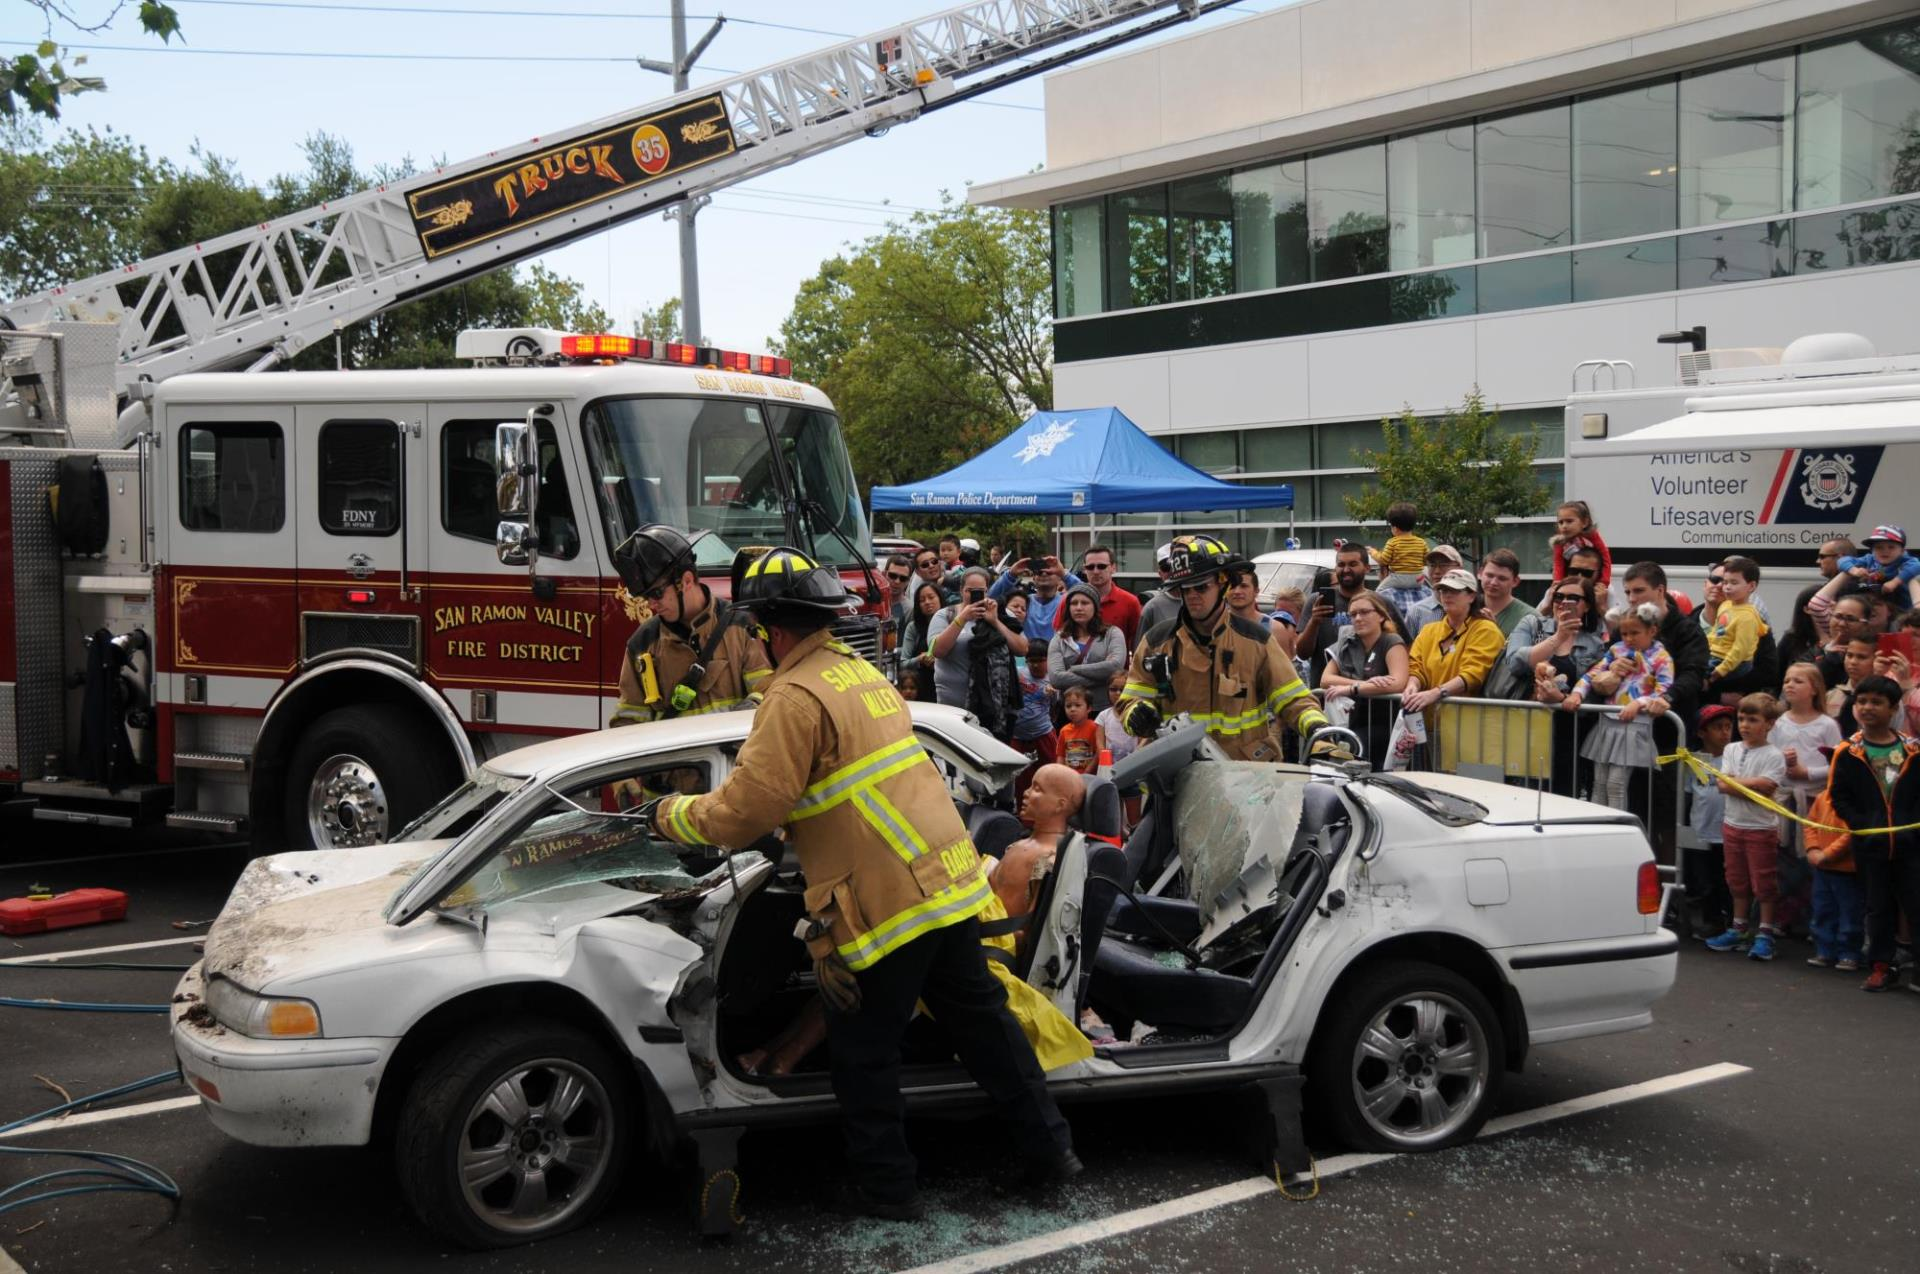 Firefighters using Jaws of Life on Car